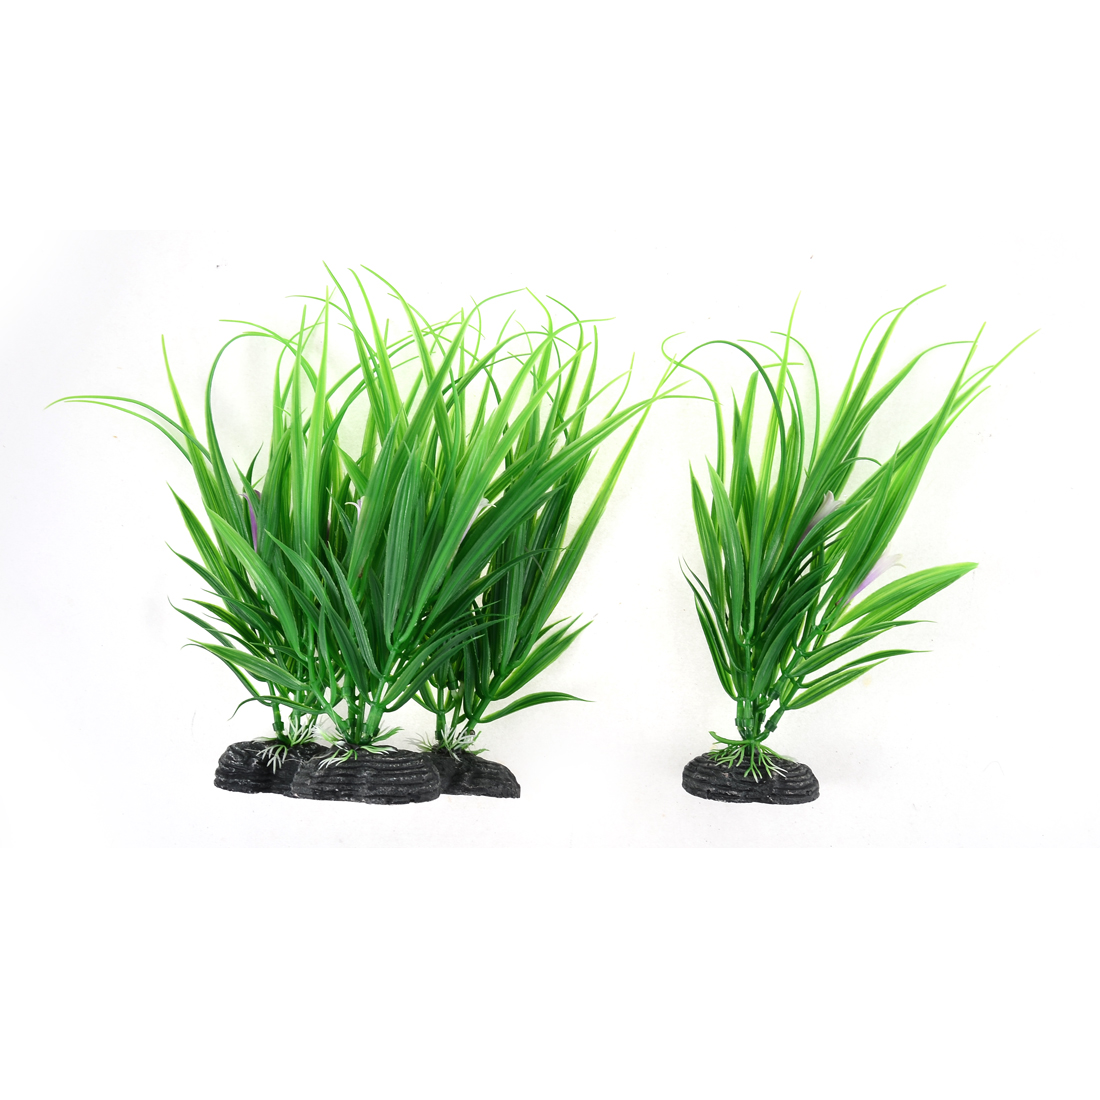 Aquarium Fish Tank Landscaping Artificial Plastic Aquatic Plants Green 20cm 4pcs